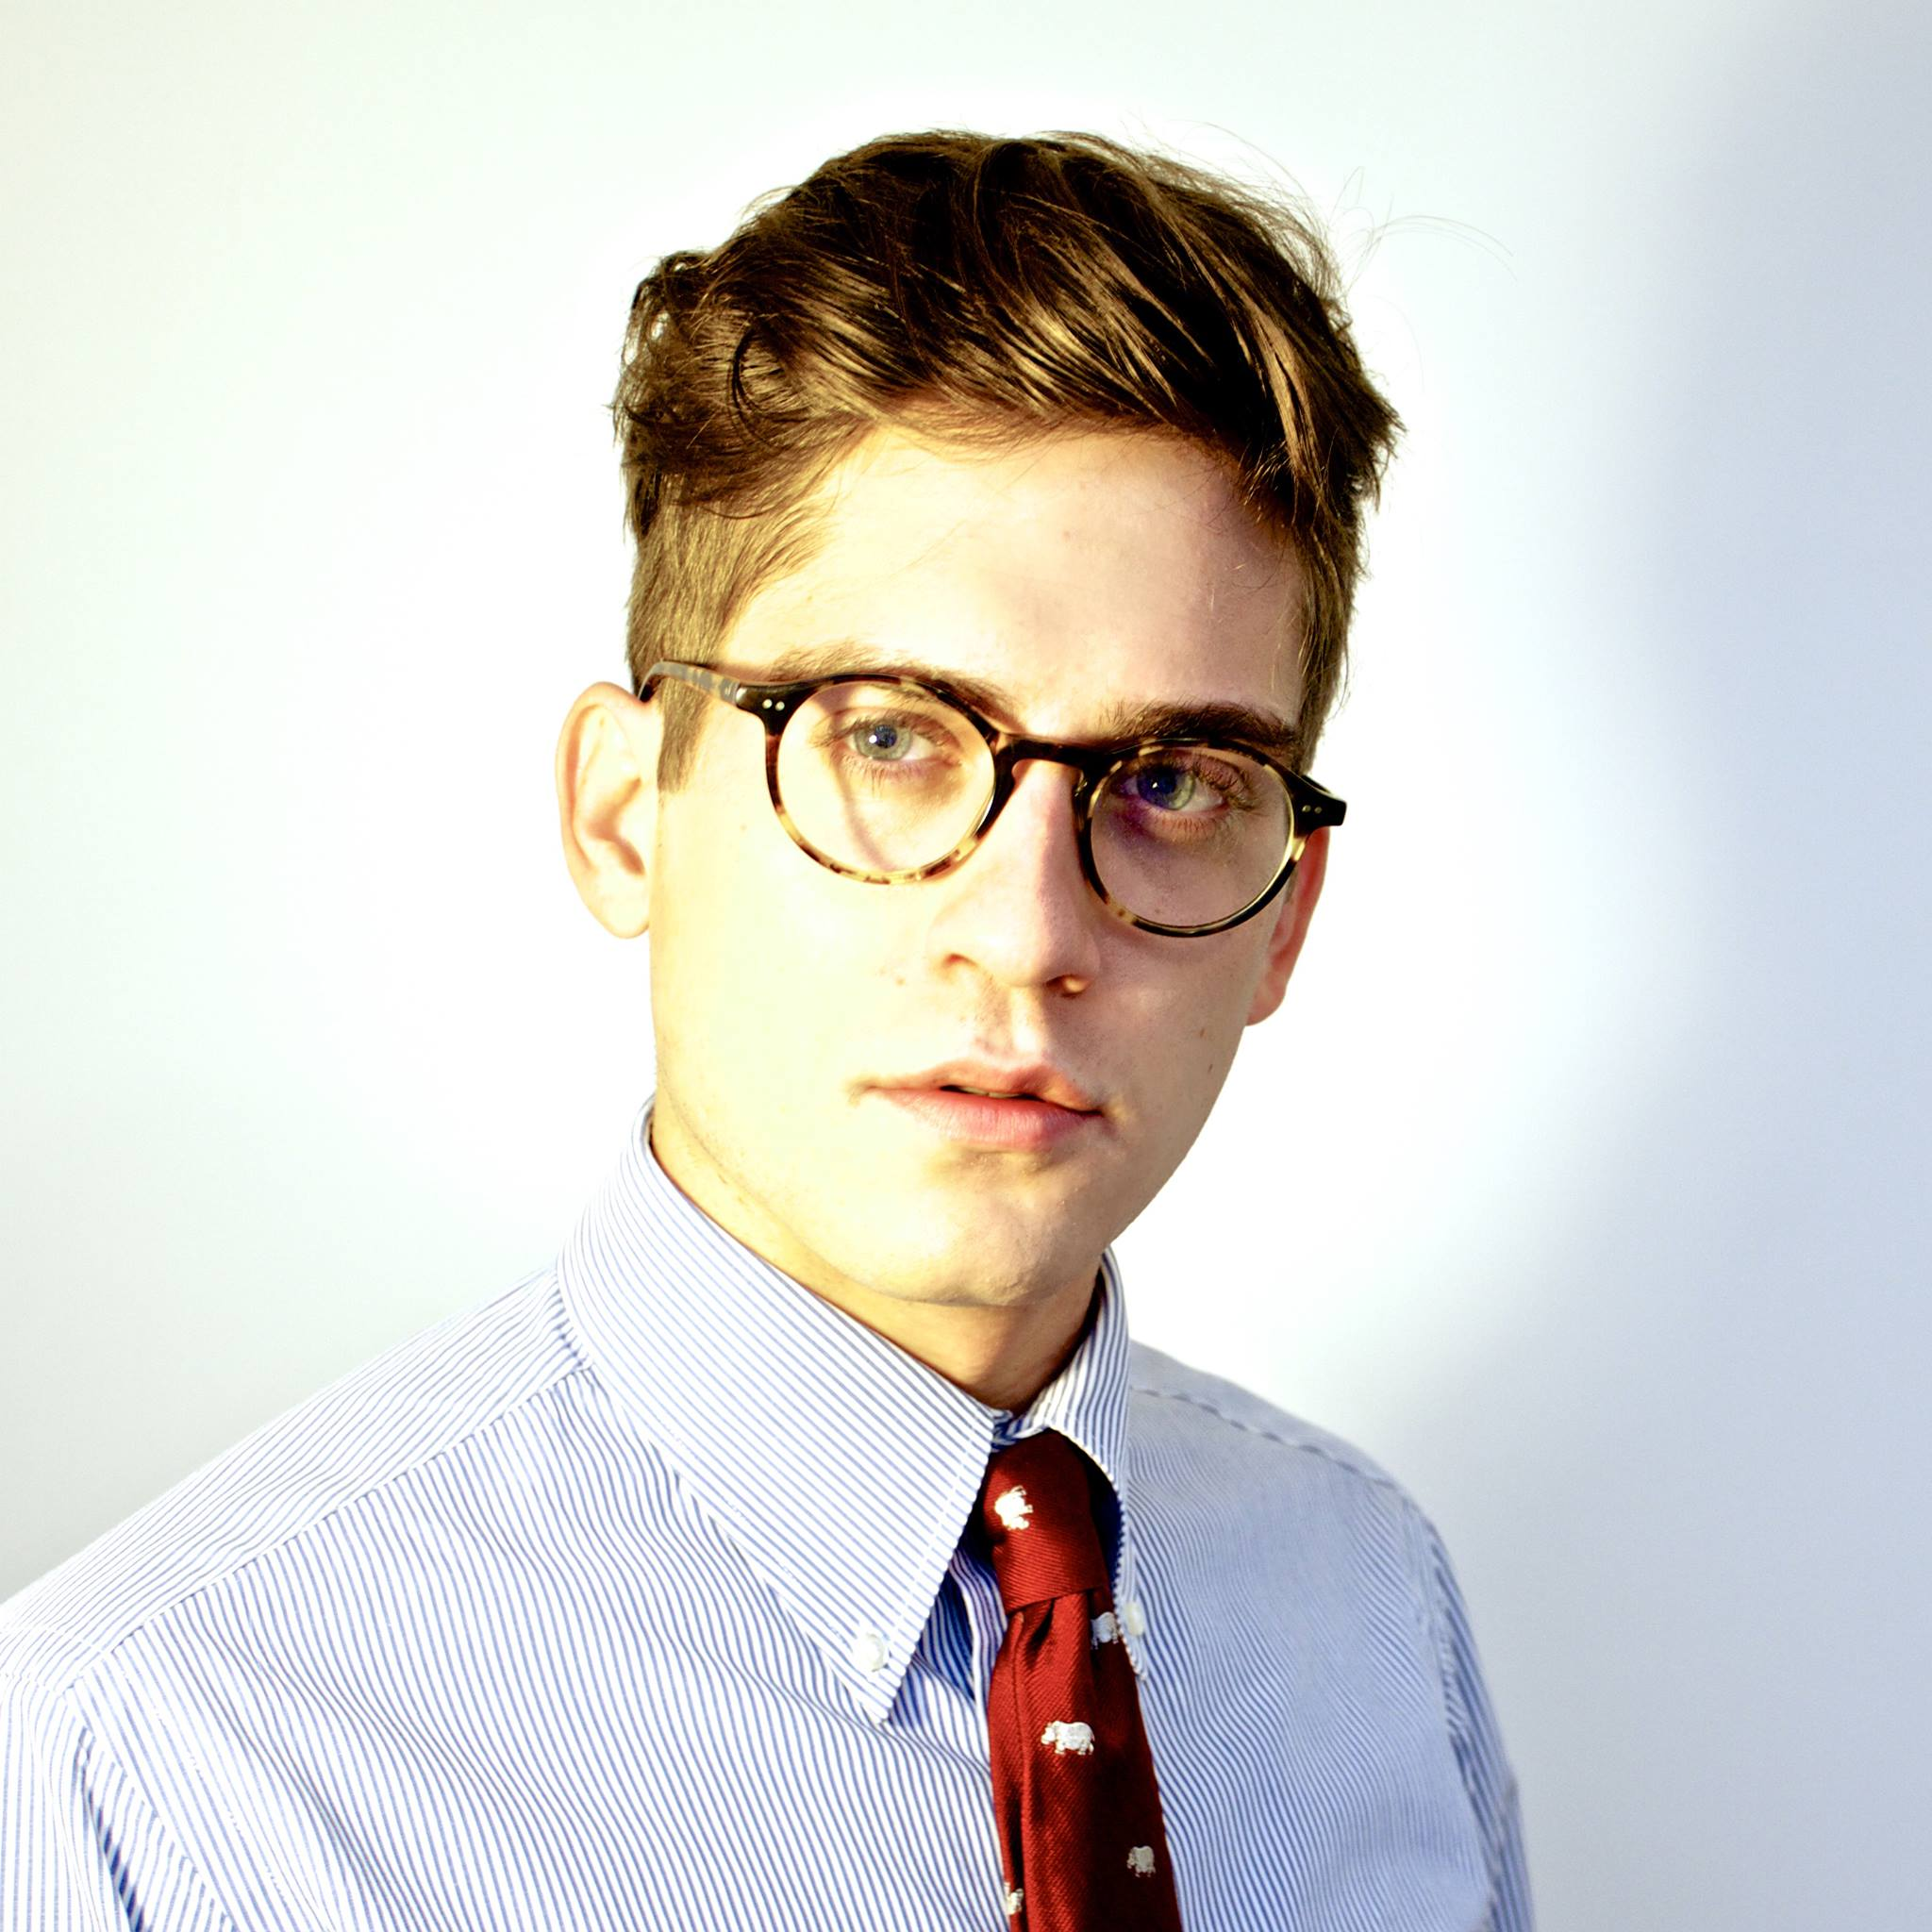 Lucian Wintrich, the White House press correspondent for Gateway Pundit, was scheduled to speak at an NYUCR event, which has been postponed following security concerns.